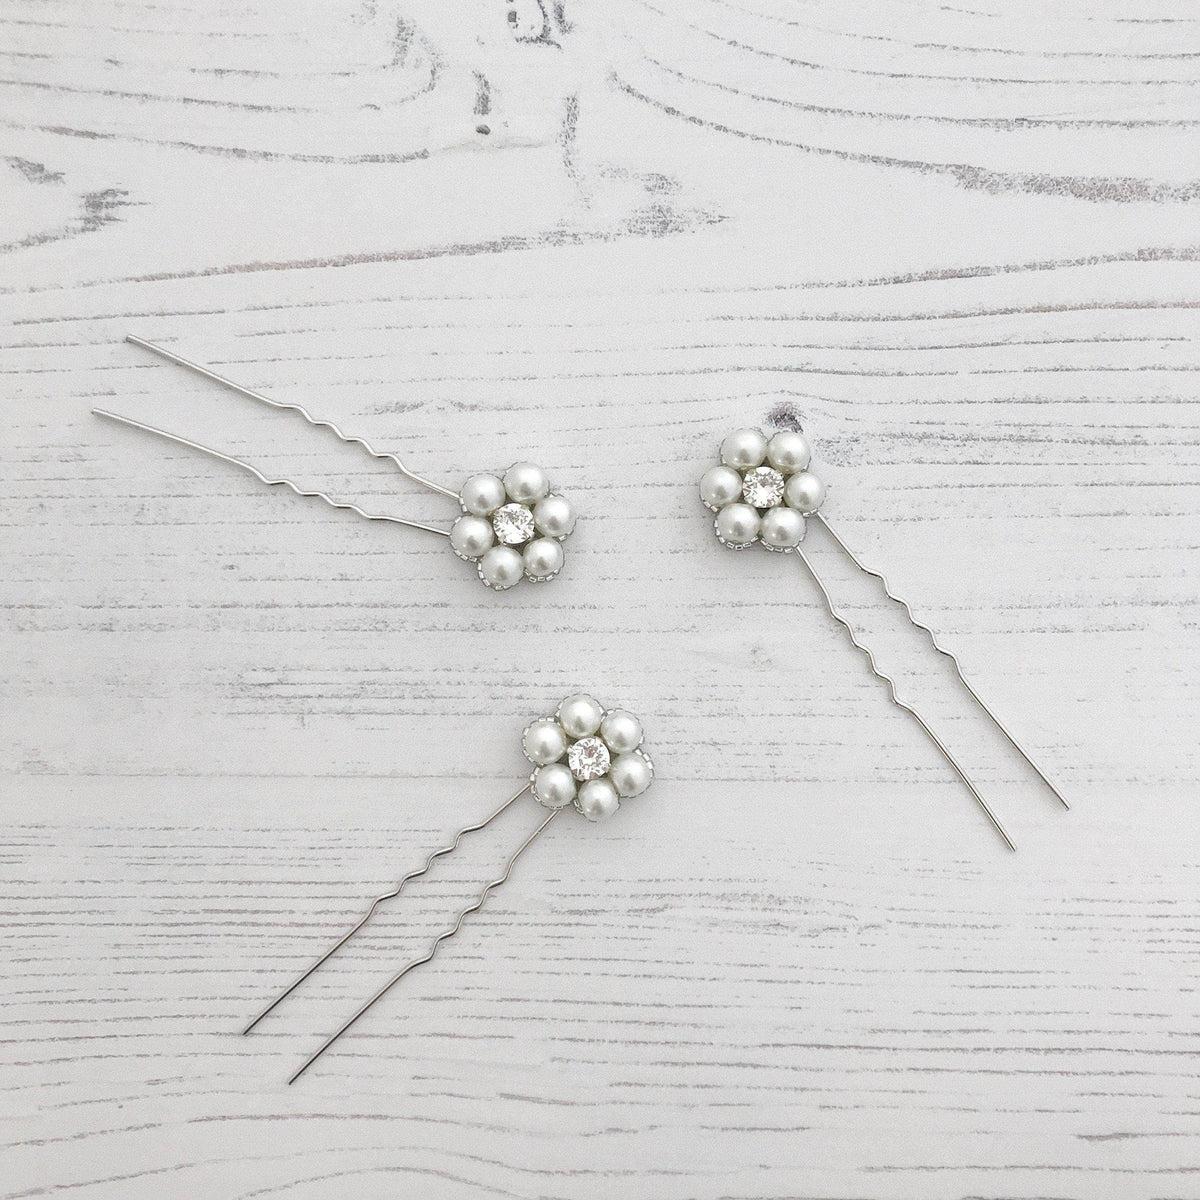 Wedding Hairpin Flower wedding hair pins in crystal and pearl (x3) - 'Lucie'